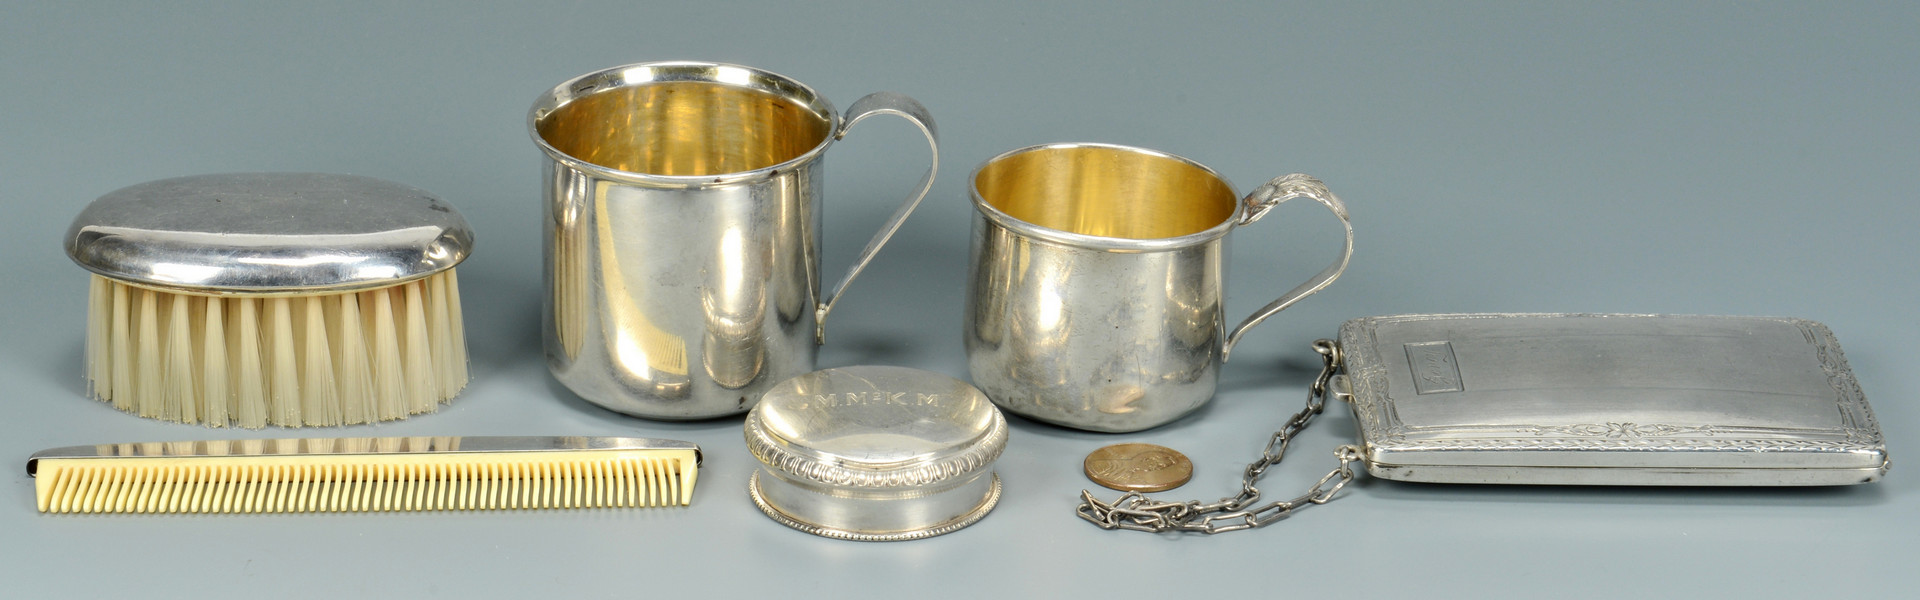 Lot 801: 6 Article of Vanity Sterling Silver